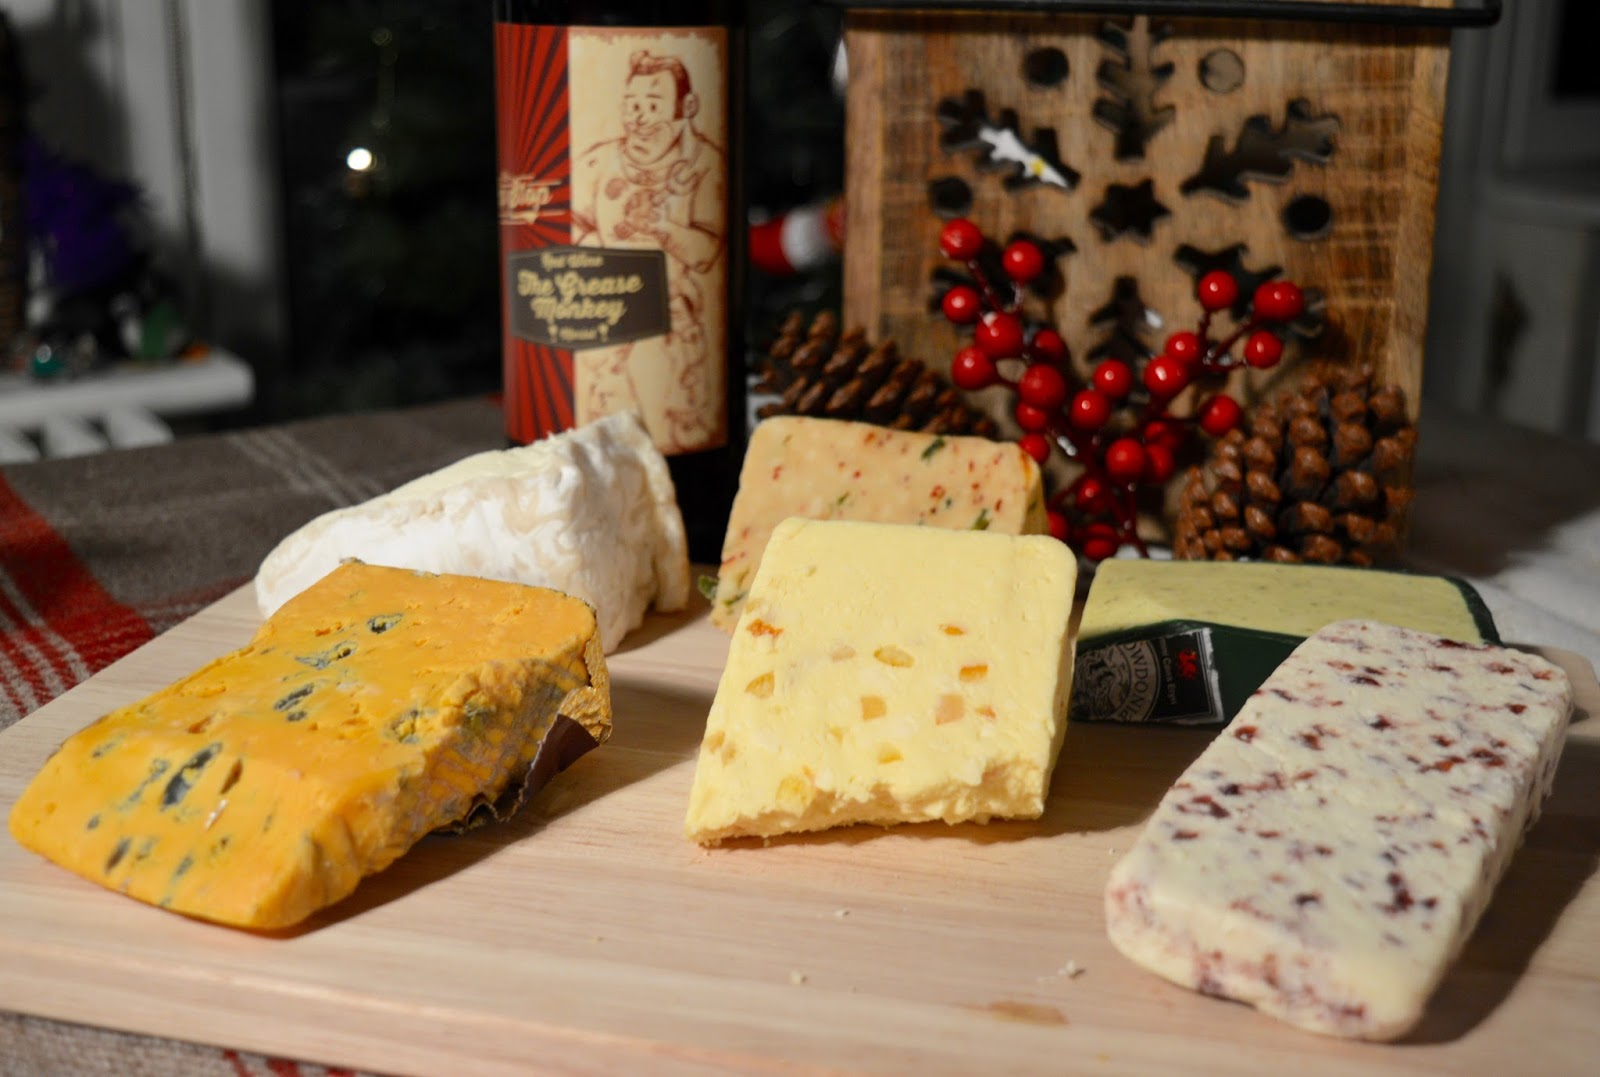 Creating a perfect Cheese Board with Matthew's Cheese Shop | The Grainger Market, Newcastle - cheese selection including Blackstick blue